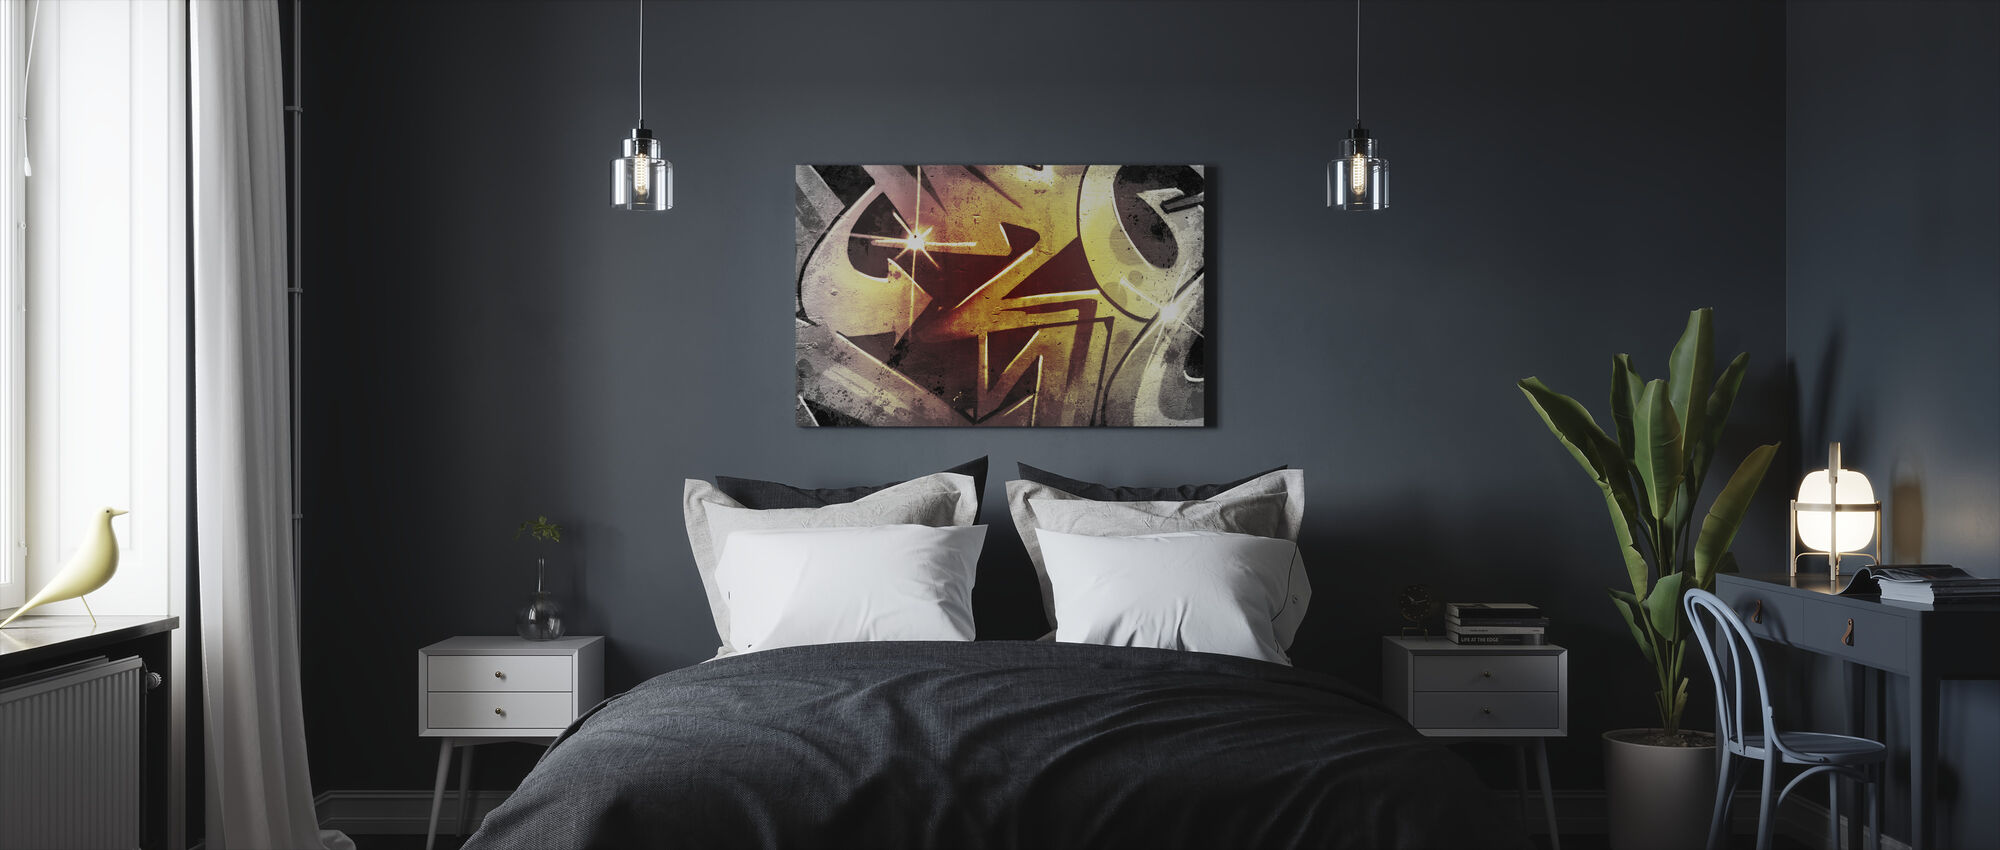 Graffiti over Old Dirty Wall - Canvas print - Bedroom